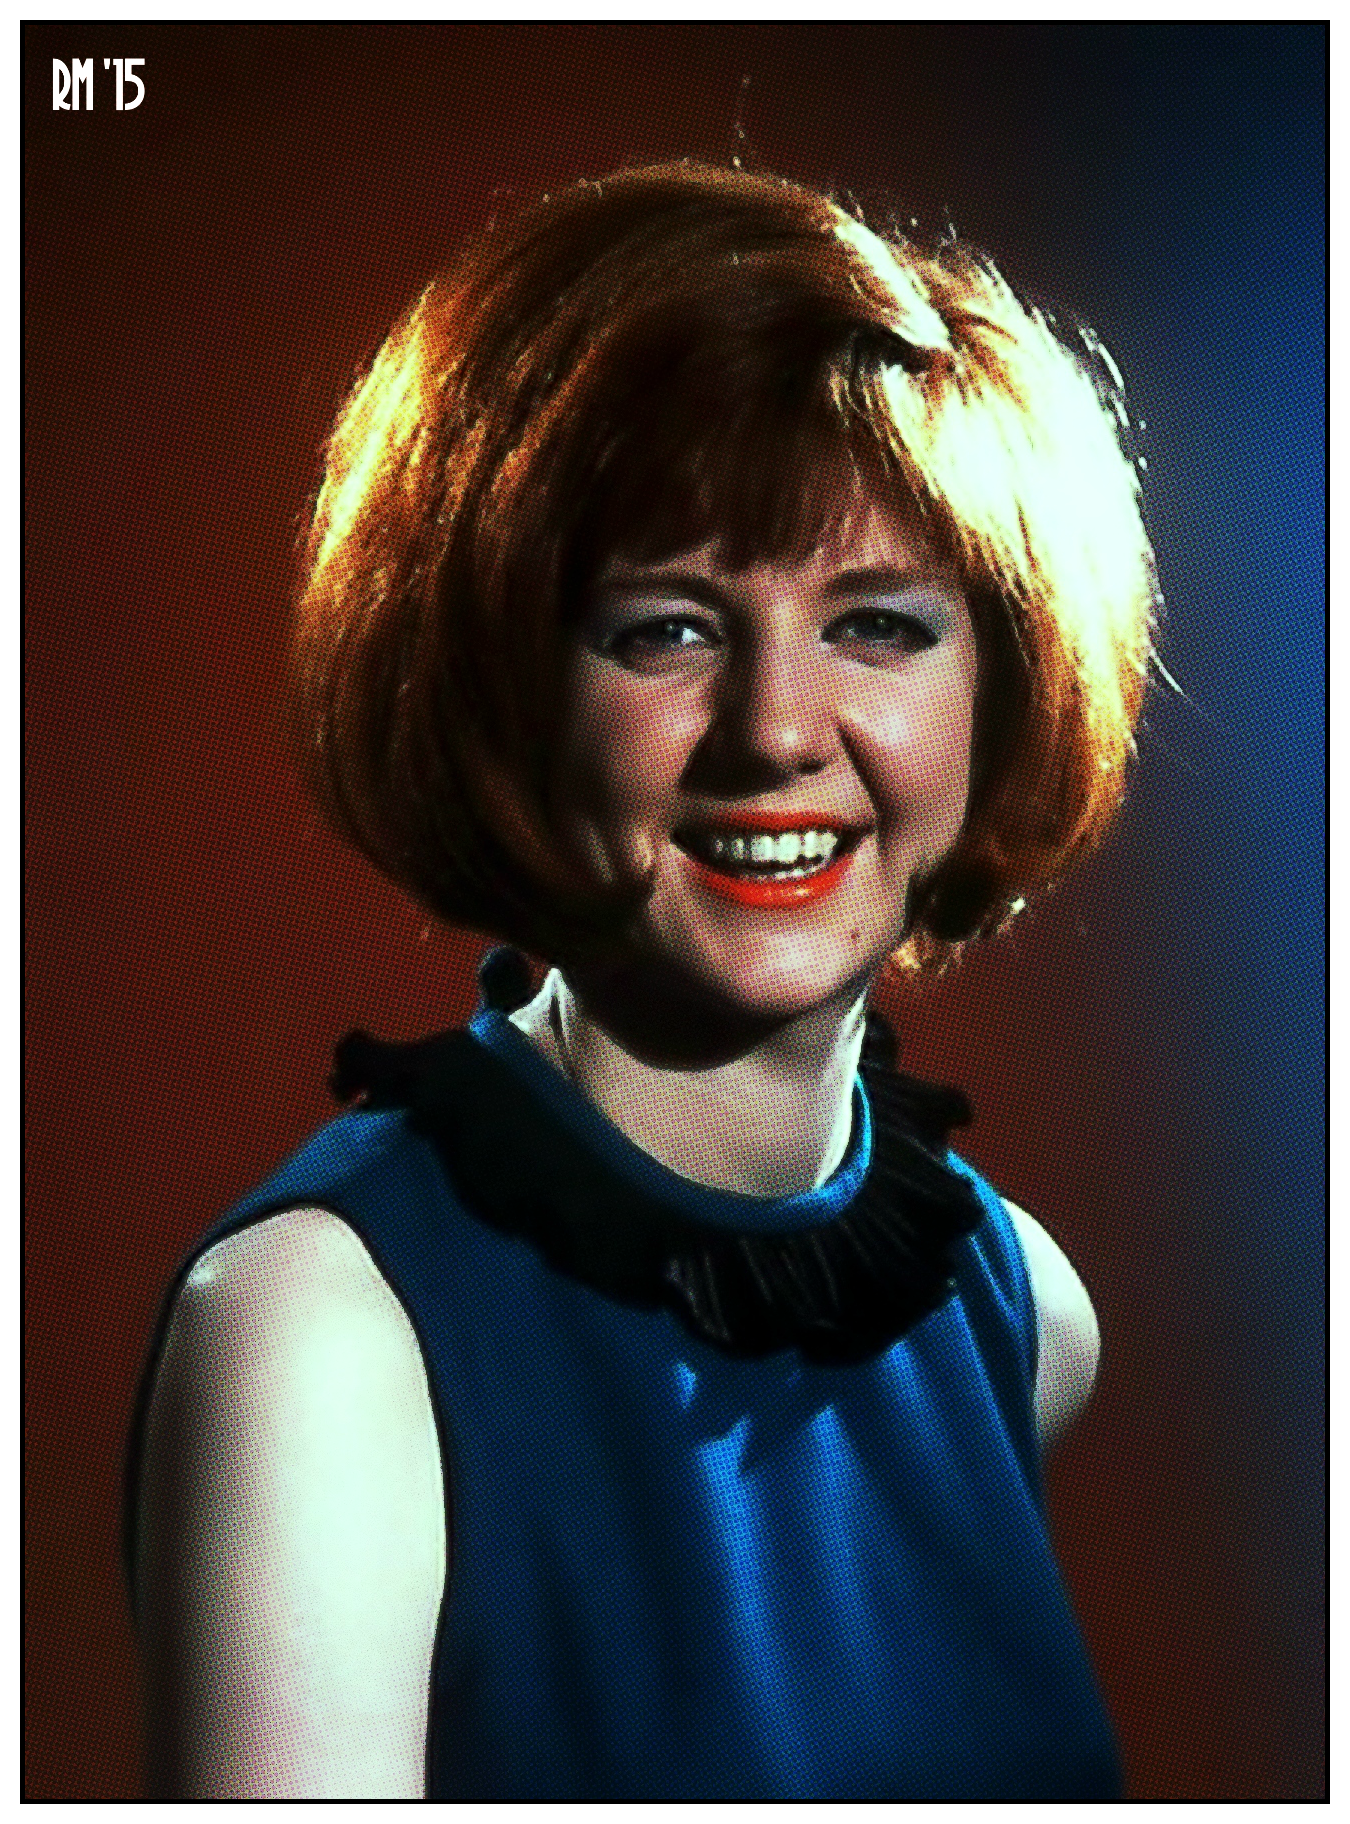 Cilla Black No 2 Rip A Reworking Of No 1 Photographer Unknown 9 29 2015 Cilla Black Vintage Hairstyles Celebrities Then And Now